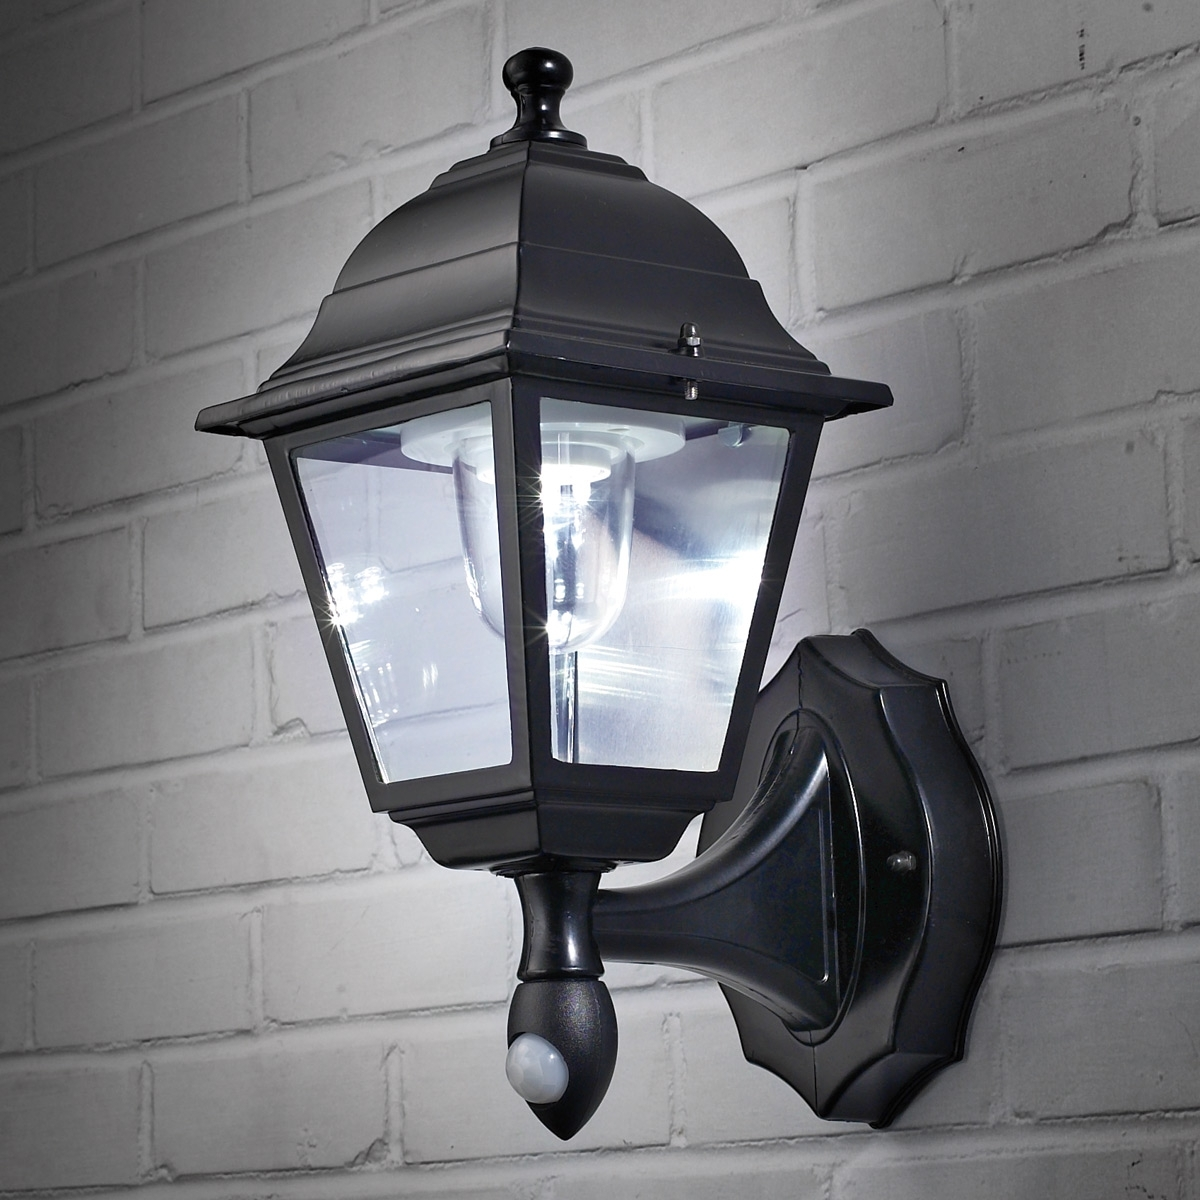 15 photo of battery operated outdoor wall lights. Black Bedroom Furniture Sets. Home Design Ideas